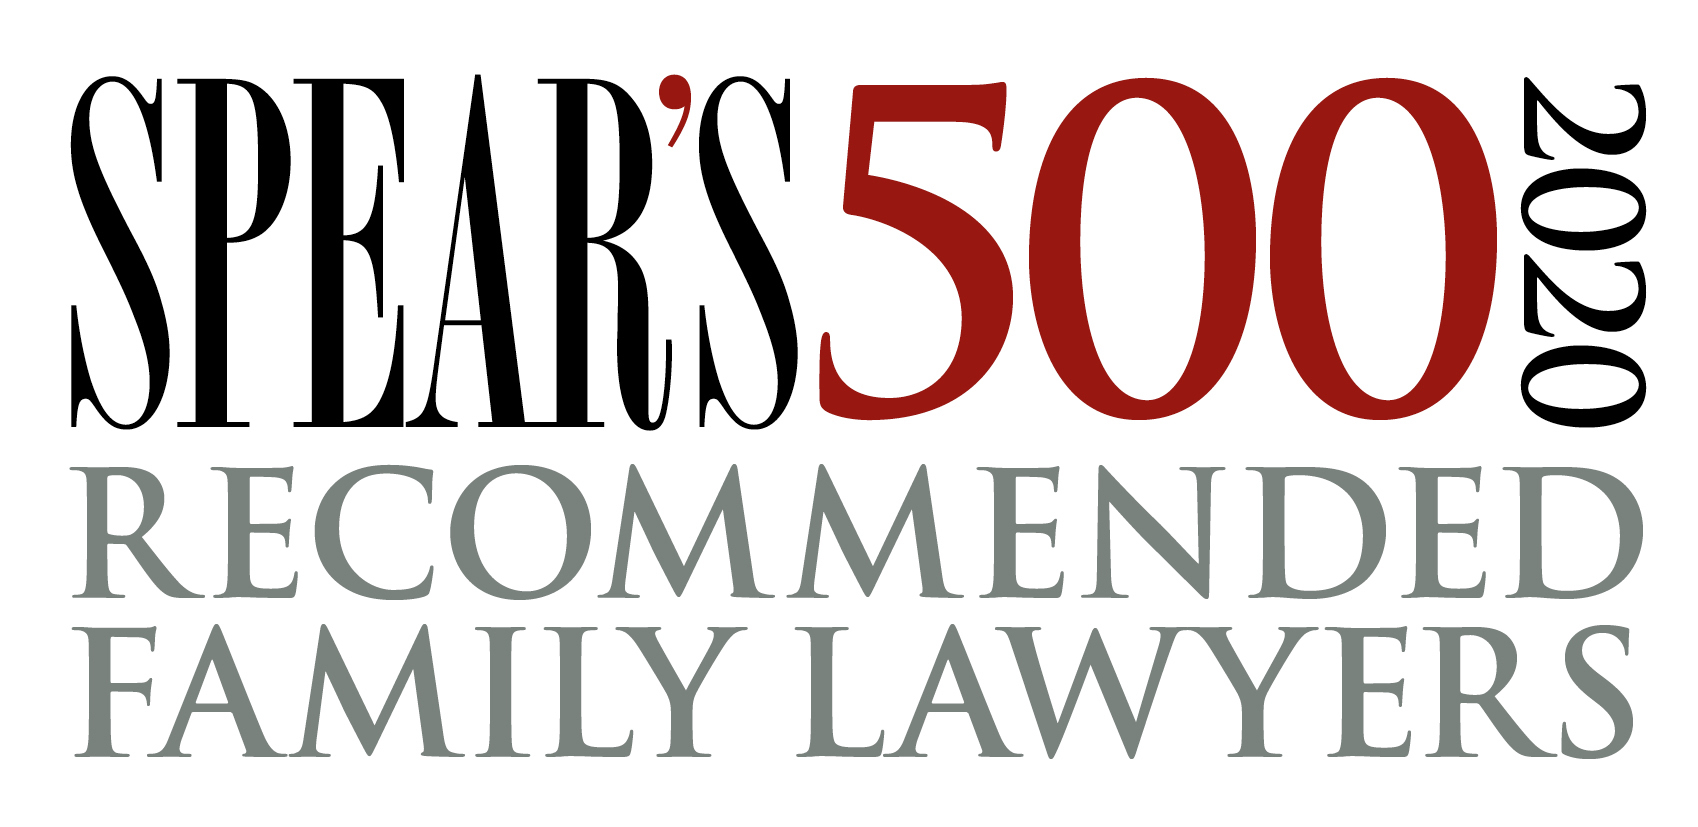 Spear's 500 2020 Recommended Family Lawyers